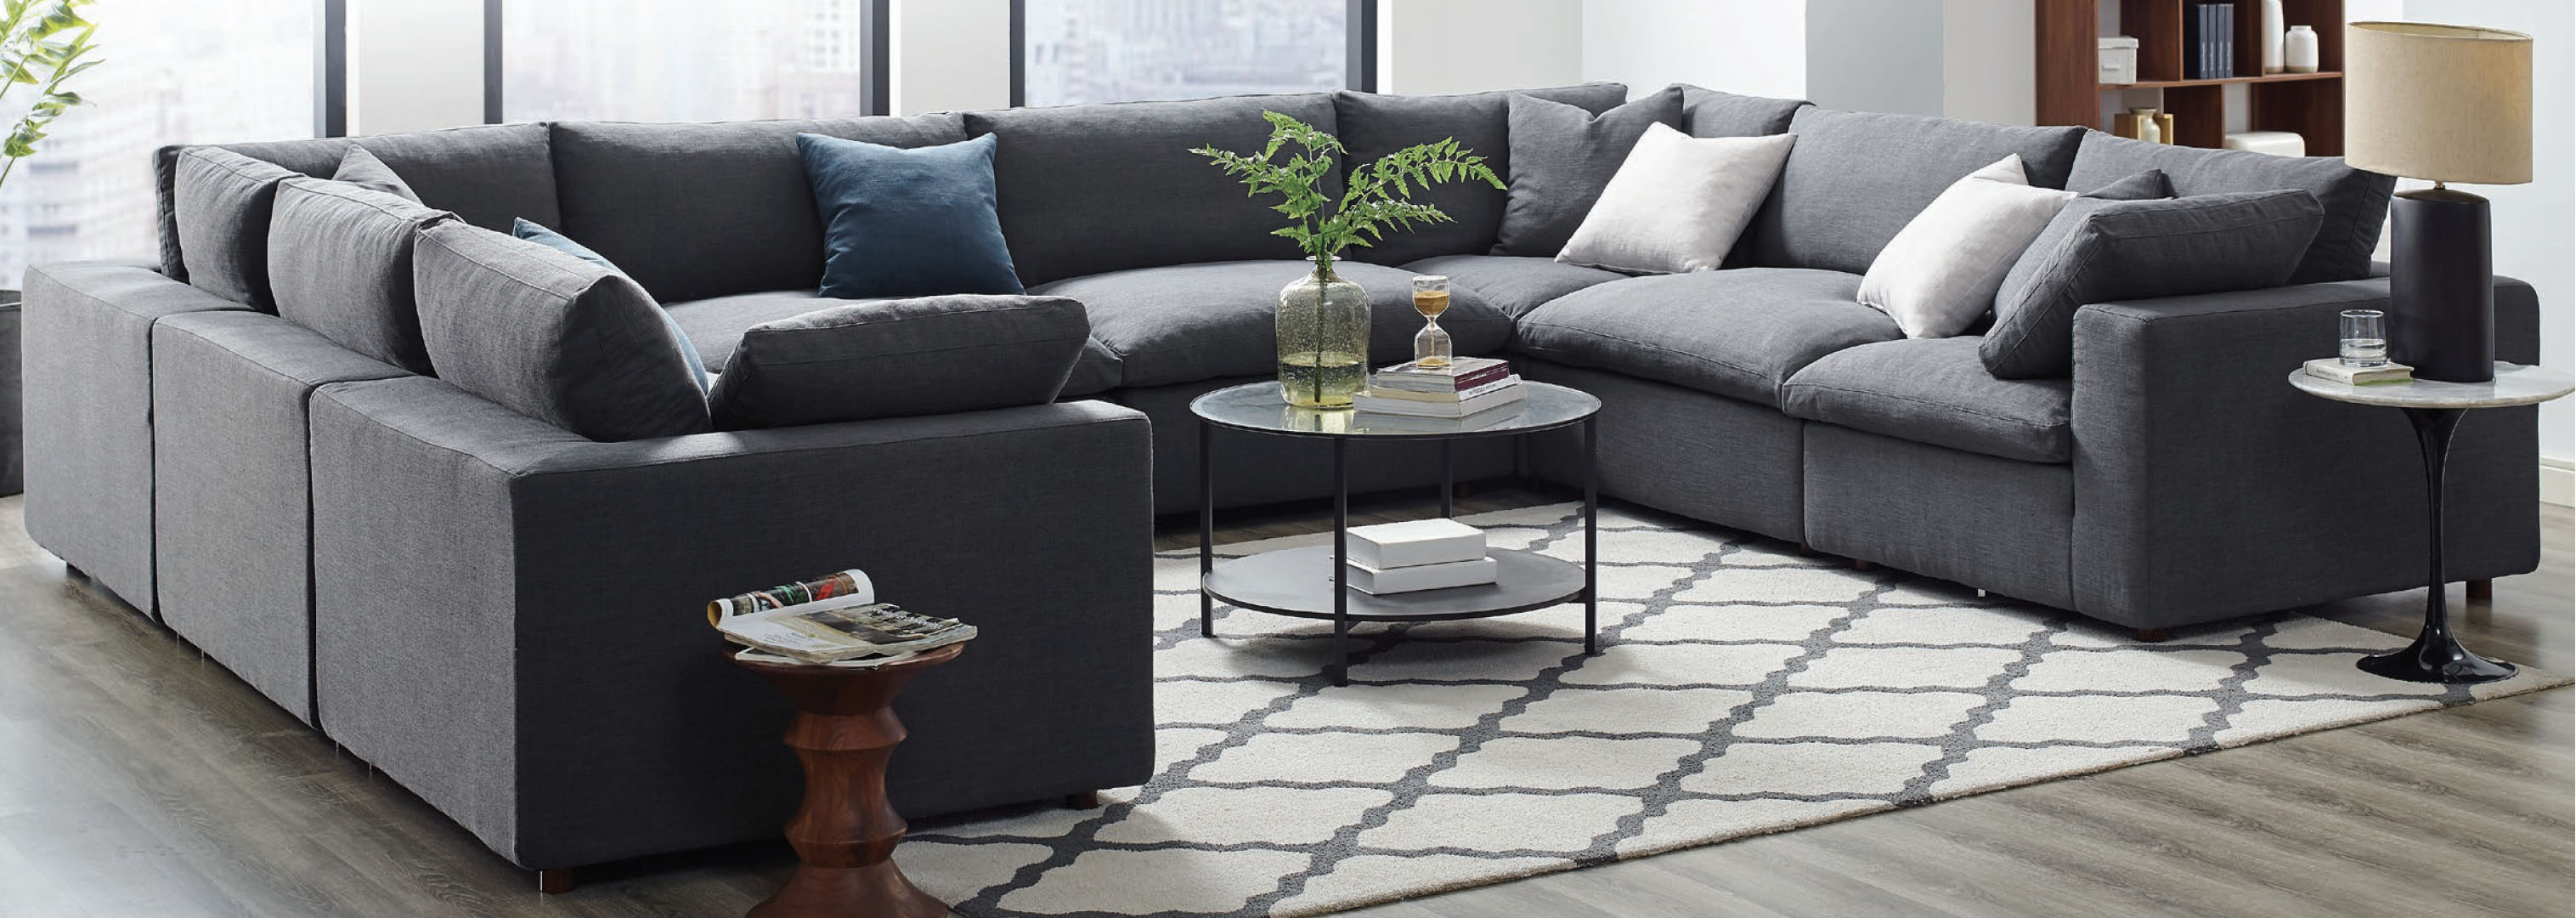 Modway Commix Sectional